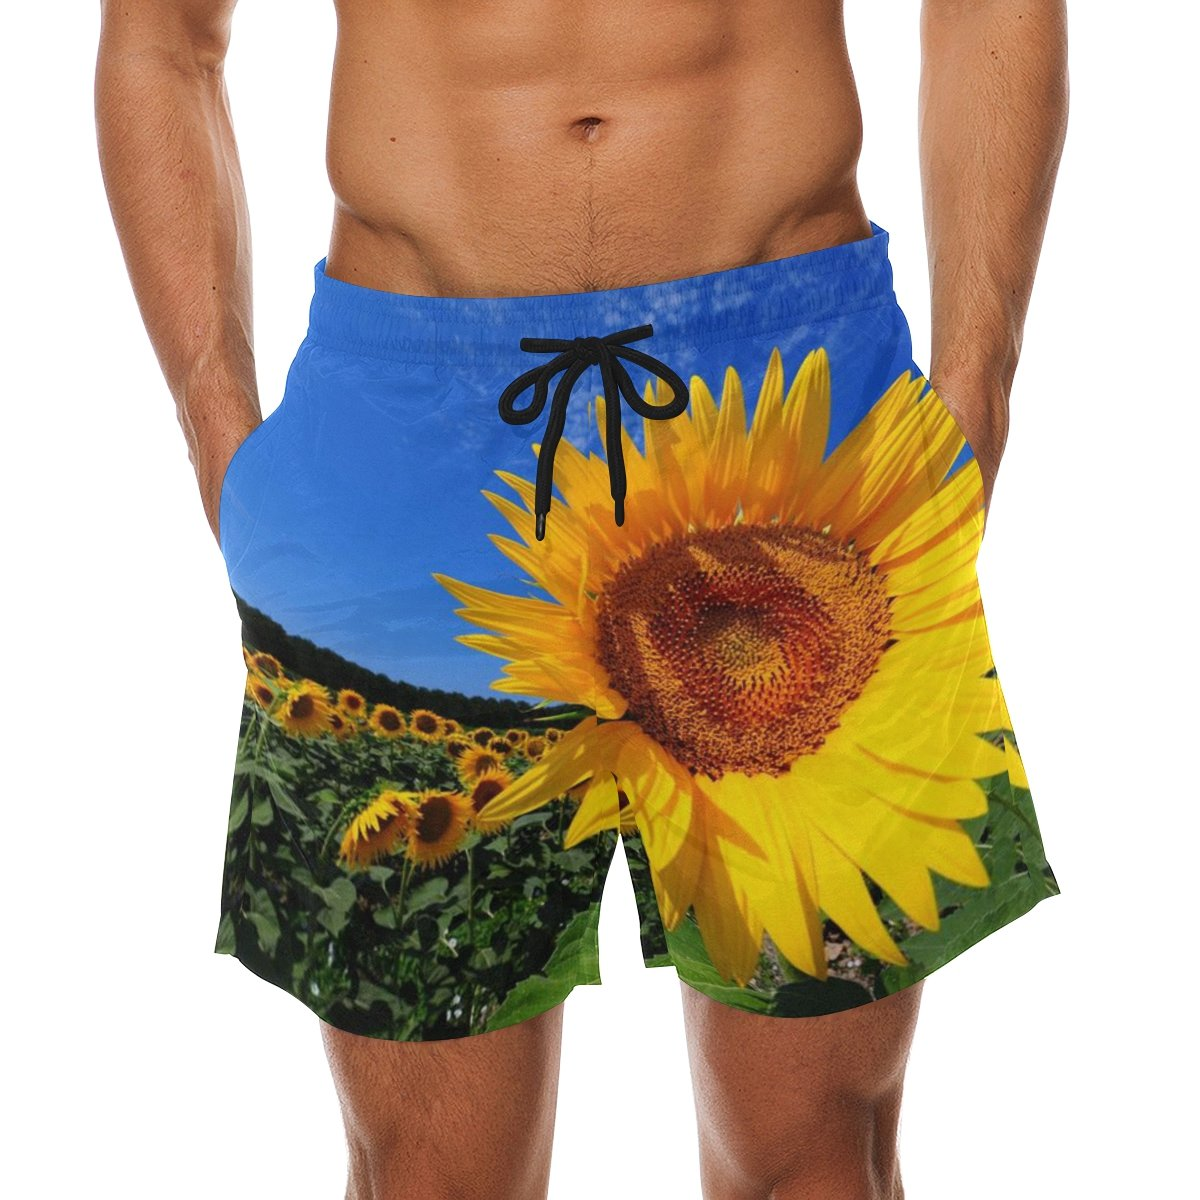 efdda1eccf50f LORVIES Men's Bright Summer Sunflower Beach Board Shorts Quick Dry Swim  Trunk | Amazon.com